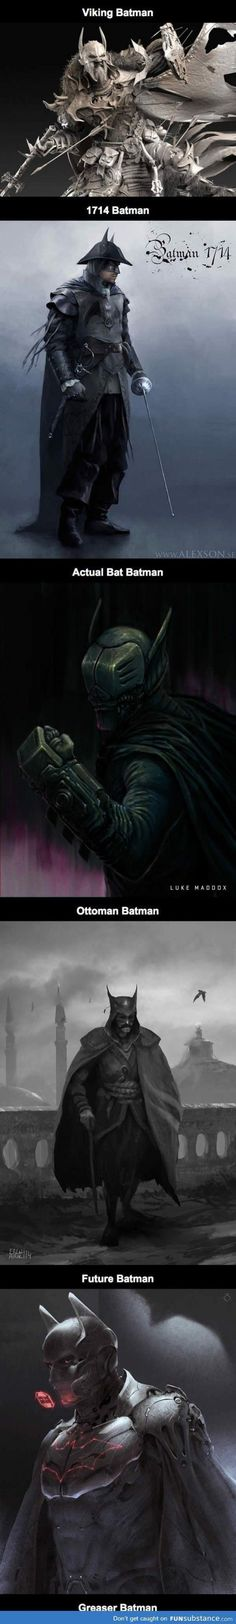 Awesome Batman Fanart That You'd Want To See In Movies